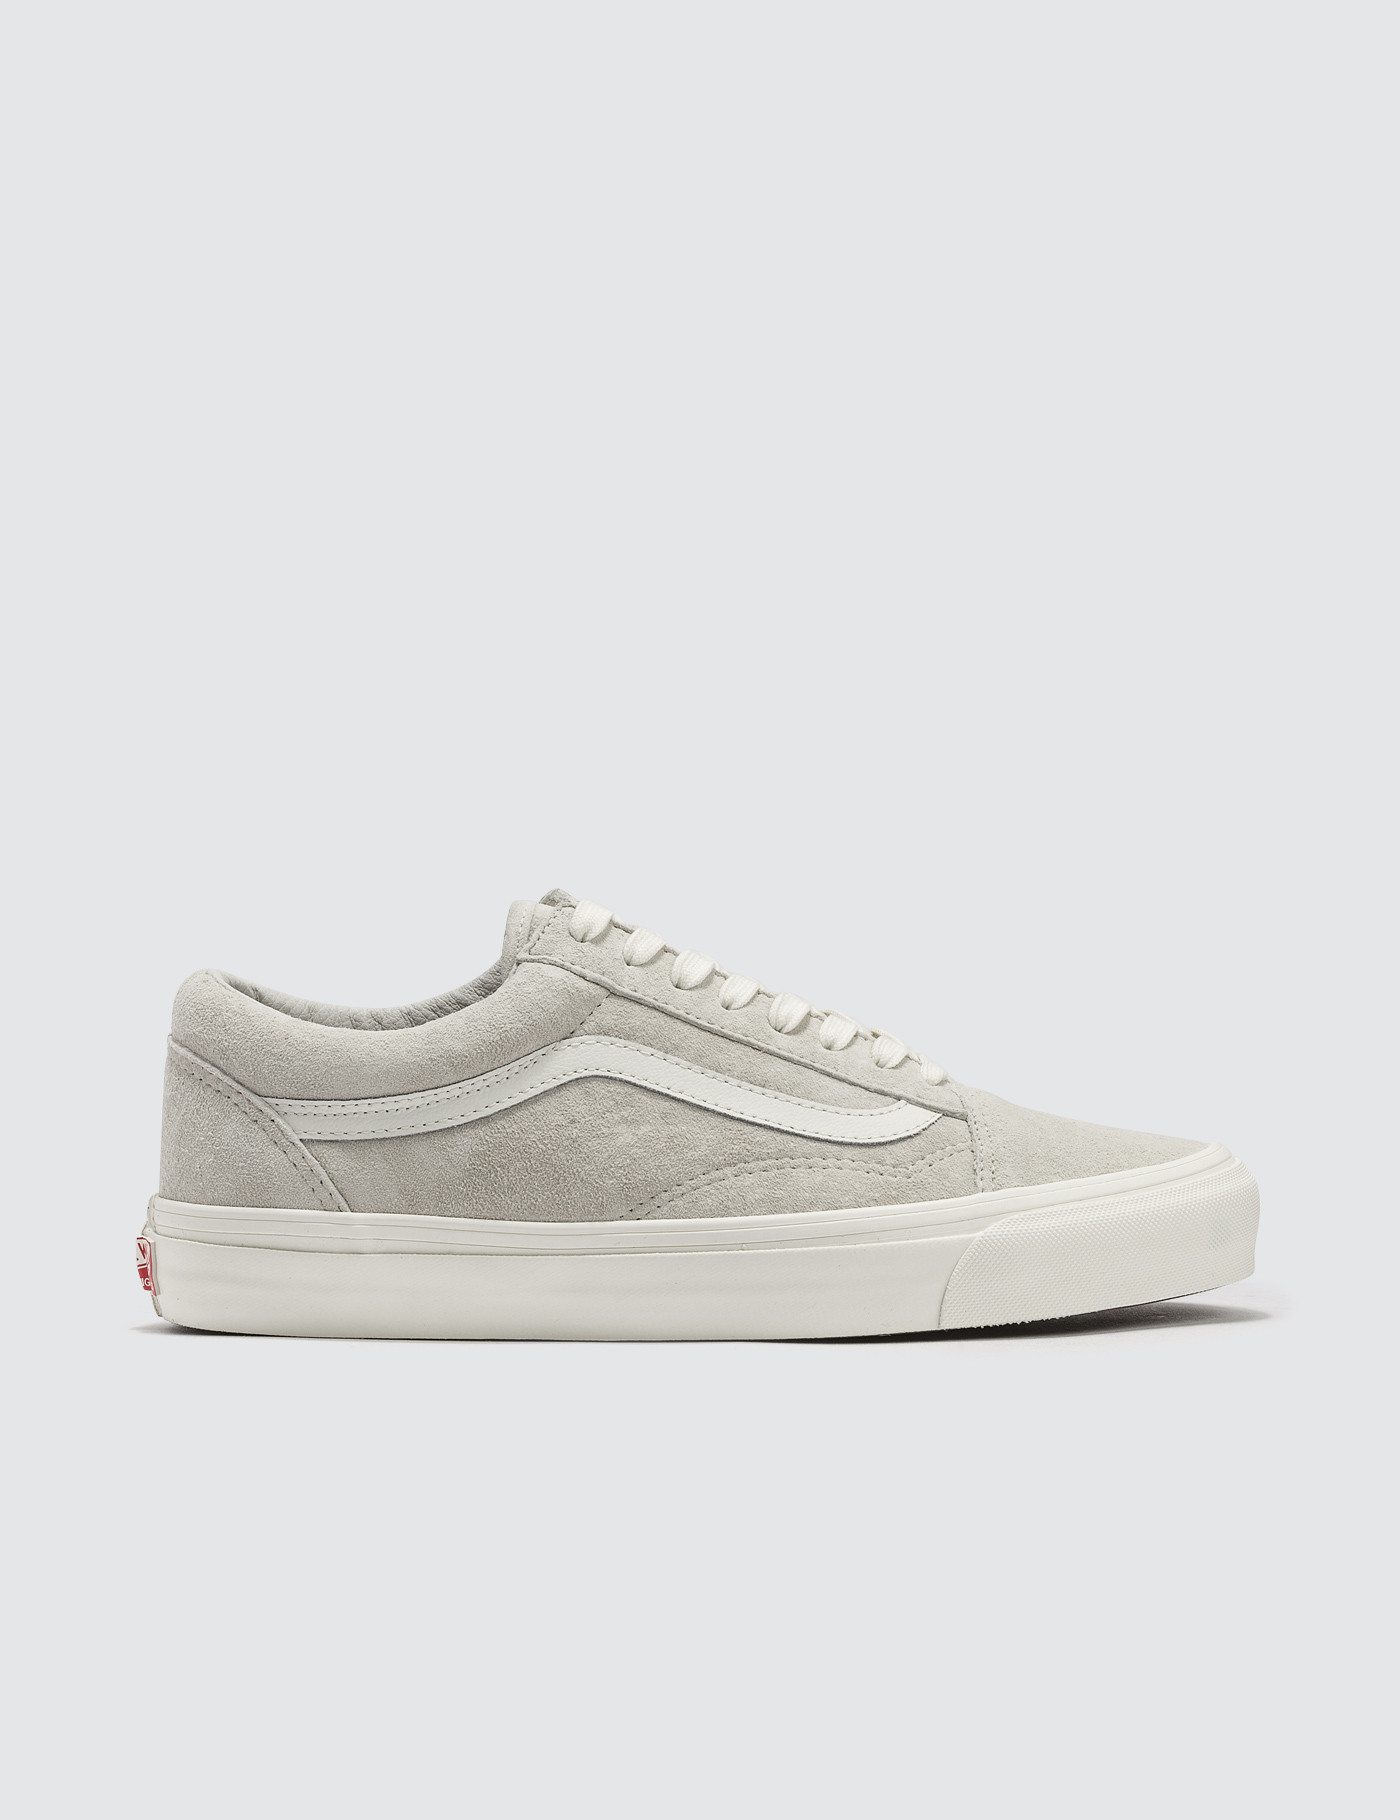 b3abe7189f70 Buy Original Vans Vault OG Old Skool LX at Indonesia